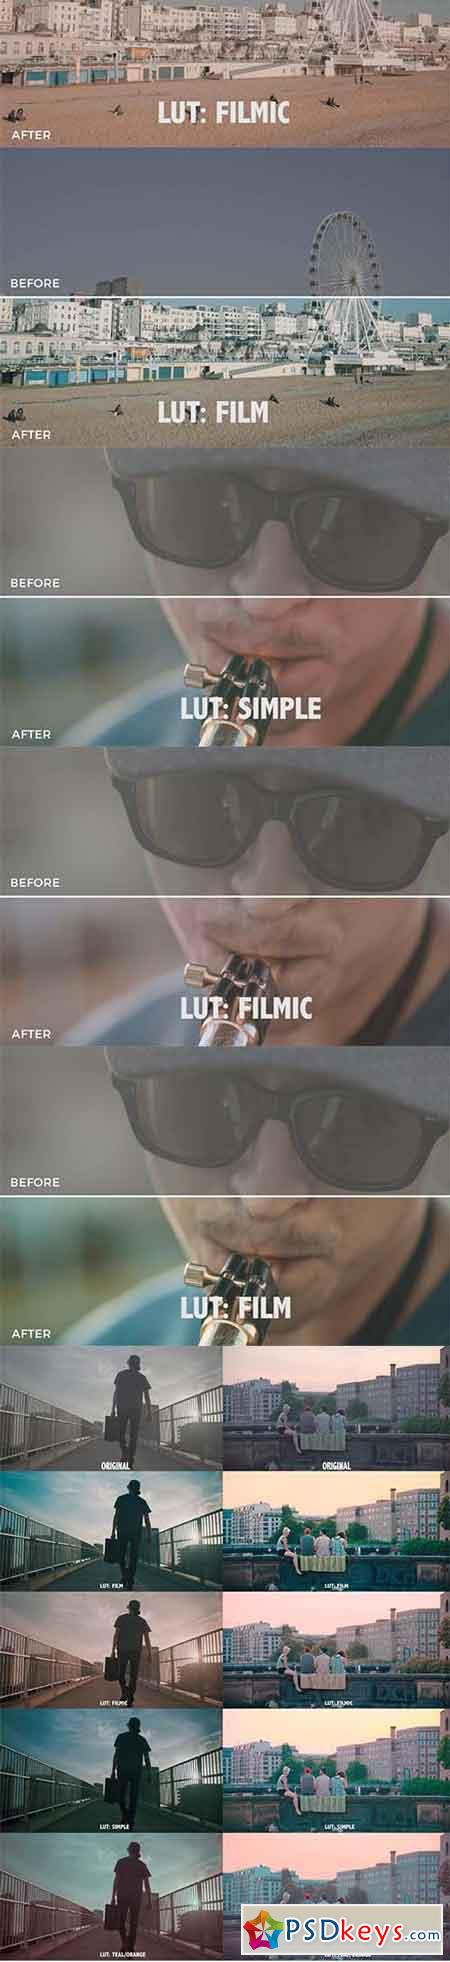 Peter Dibussolo LUTs Bundle - After Effects Projects